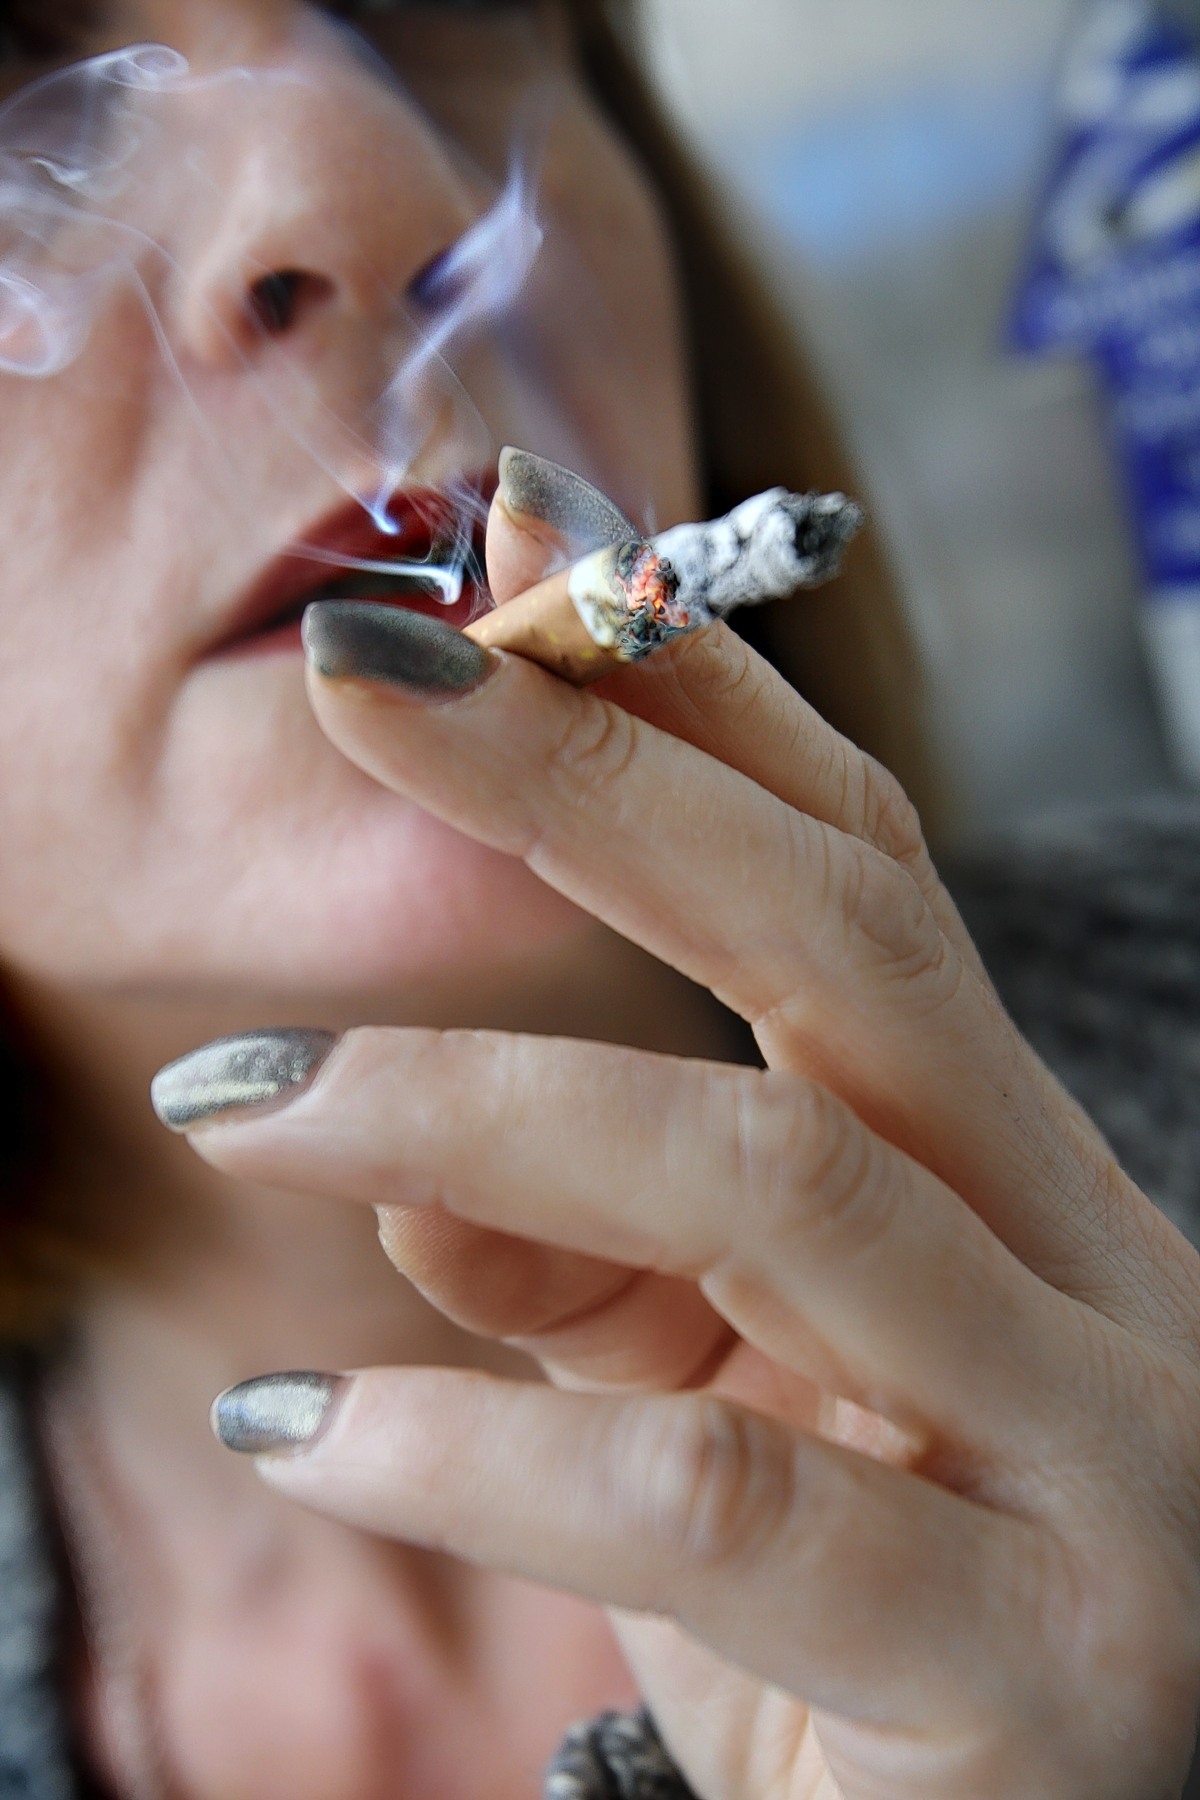 Smoking e-cigarettes at work sparks row